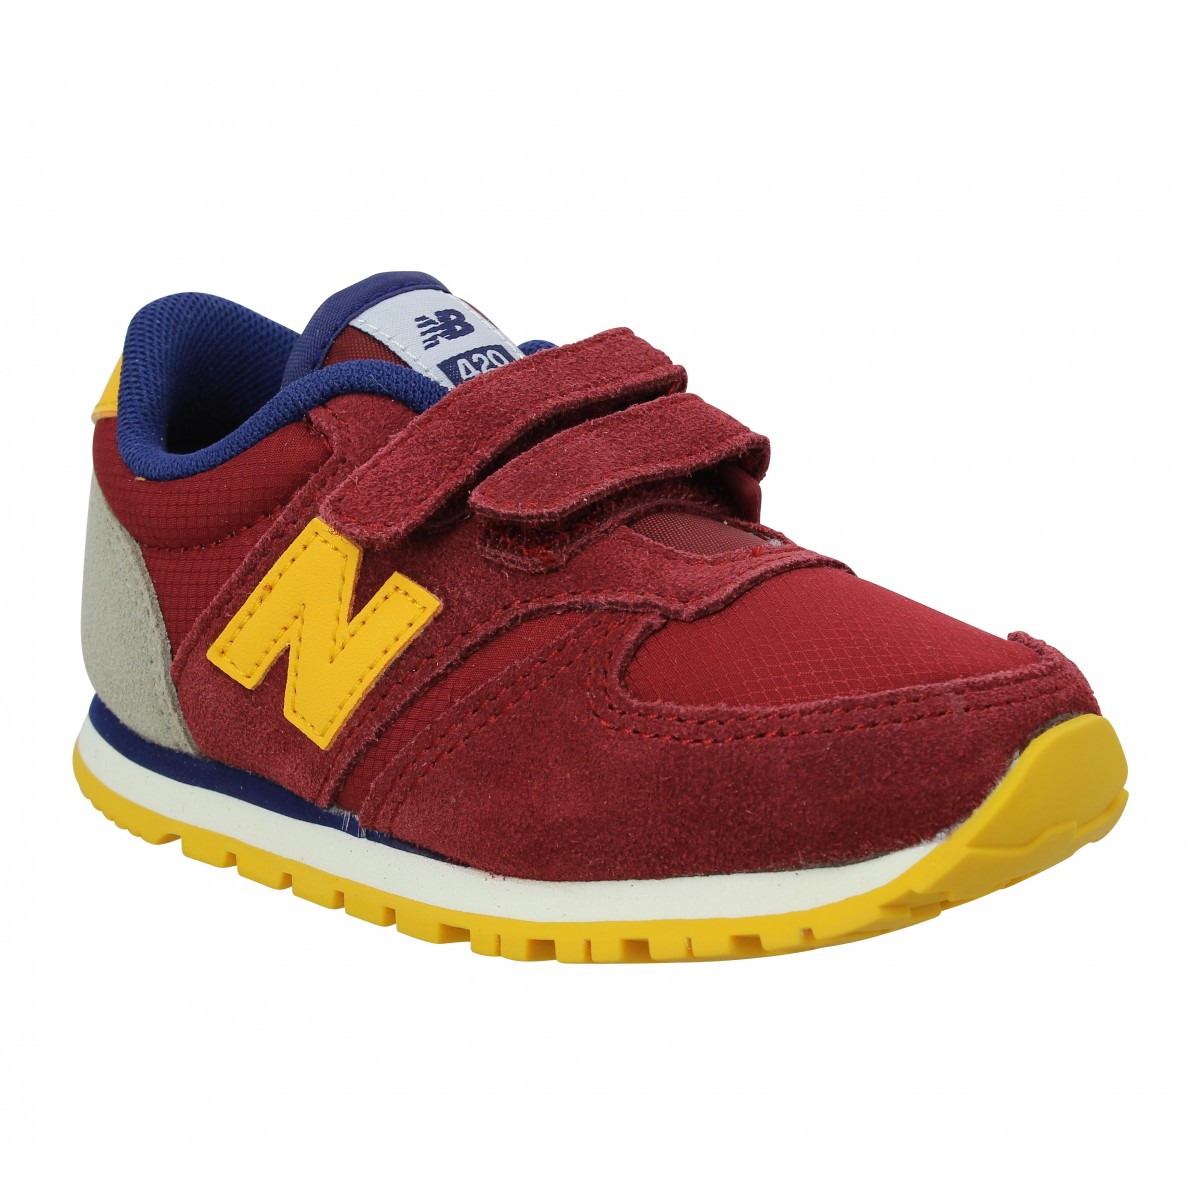 soldes new balance ke 420 enfant bordeaux enfants fanny chaussures. Black Bedroom Furniture Sets. Home Design Ideas